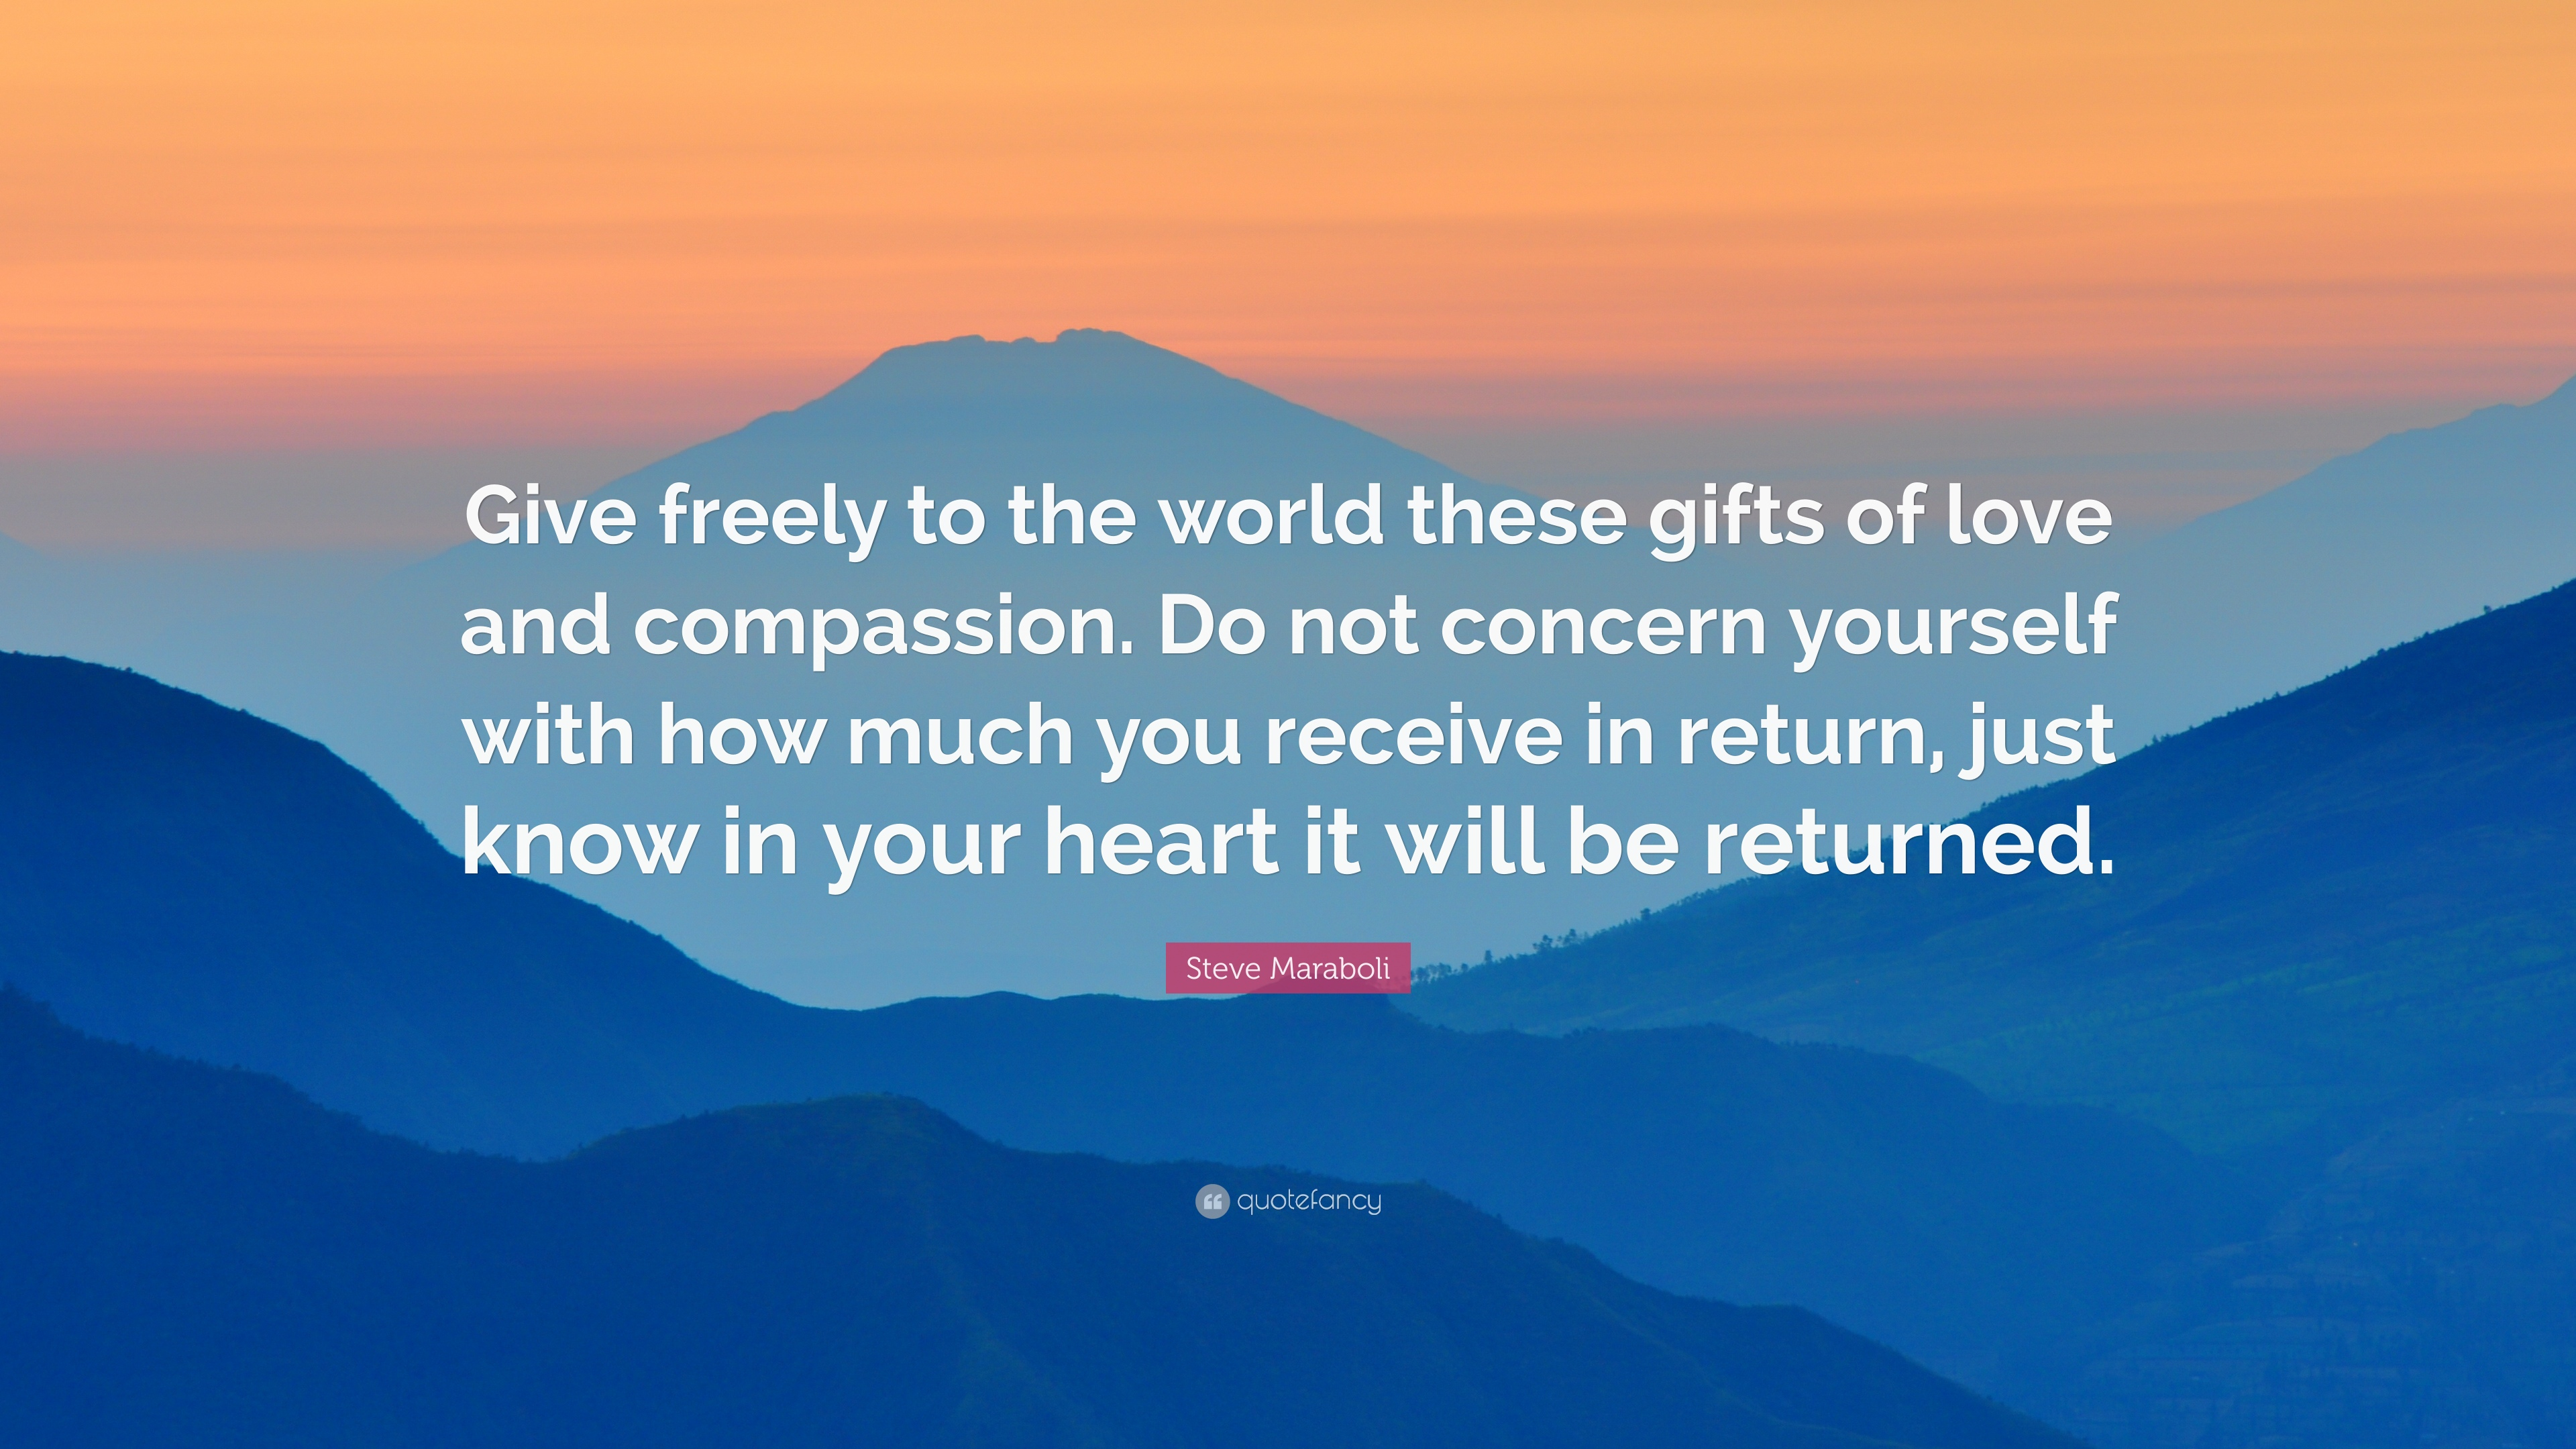 Steve maraboli quote give freely to the world these gifts of love steve maraboli quote give freely to the world these gifts of love and compassion solutioingenieria Choice Image